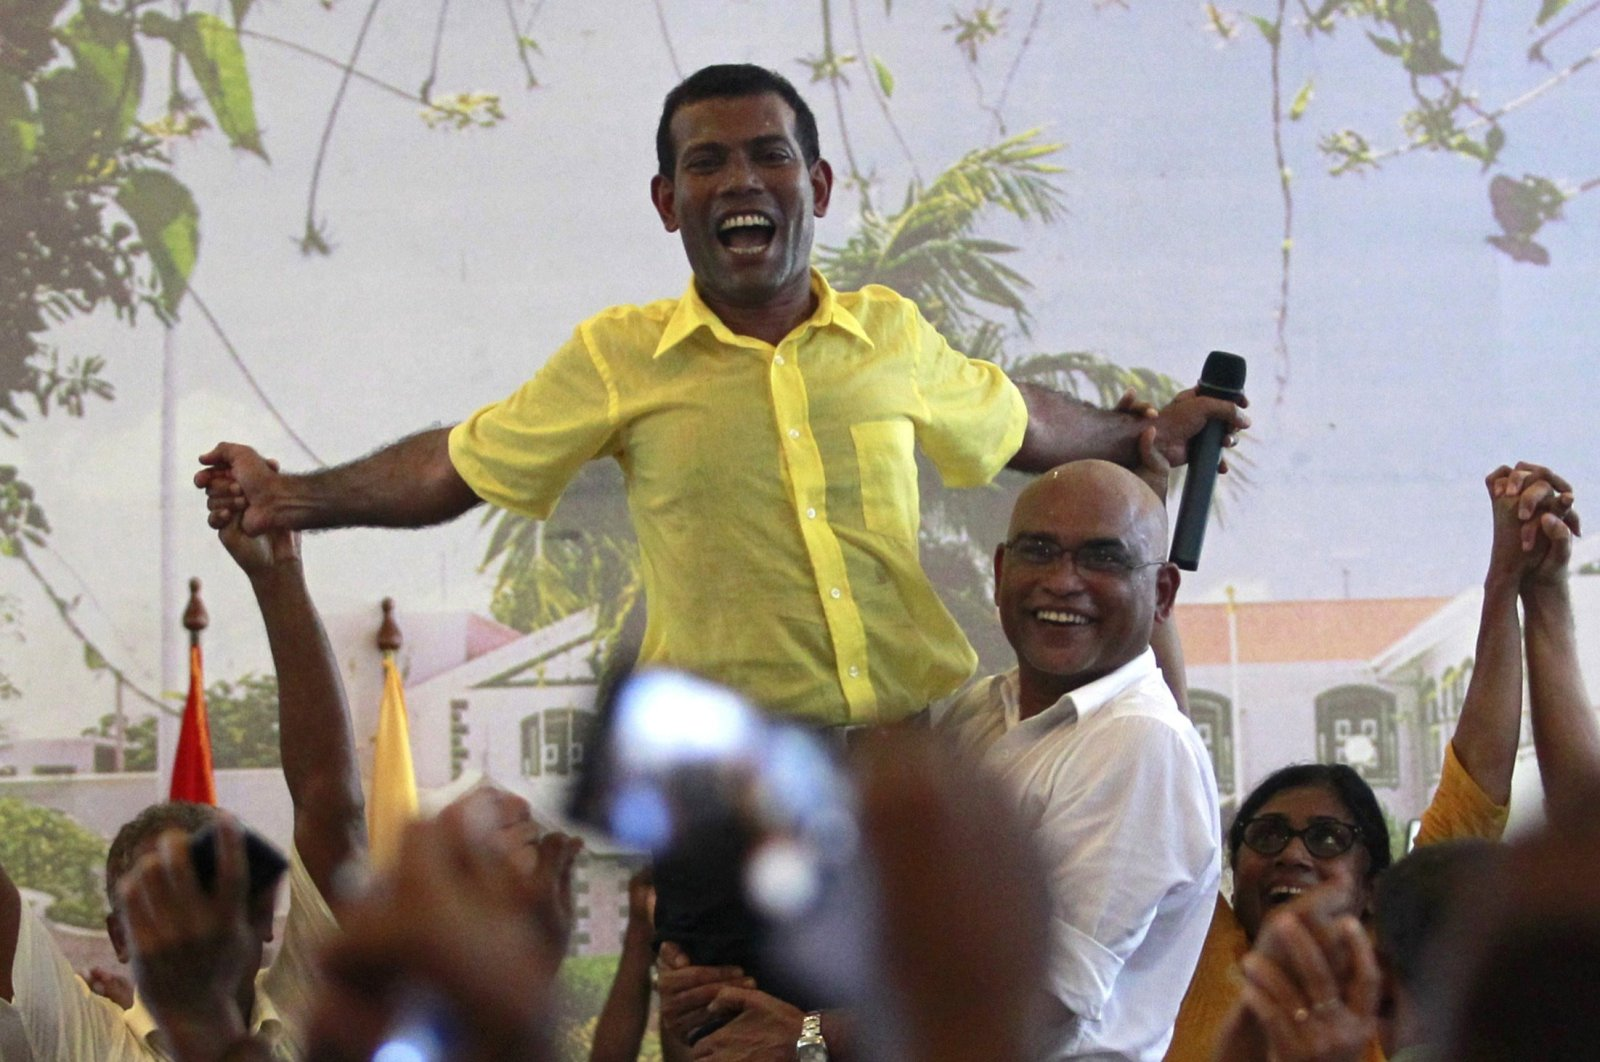 Ousted Maldivian President Mohamed Nasheed is carried by his supporters during the Maldivian Democratic Party's meeting in Male, Feb. 8, 2012.   (REUTERS)